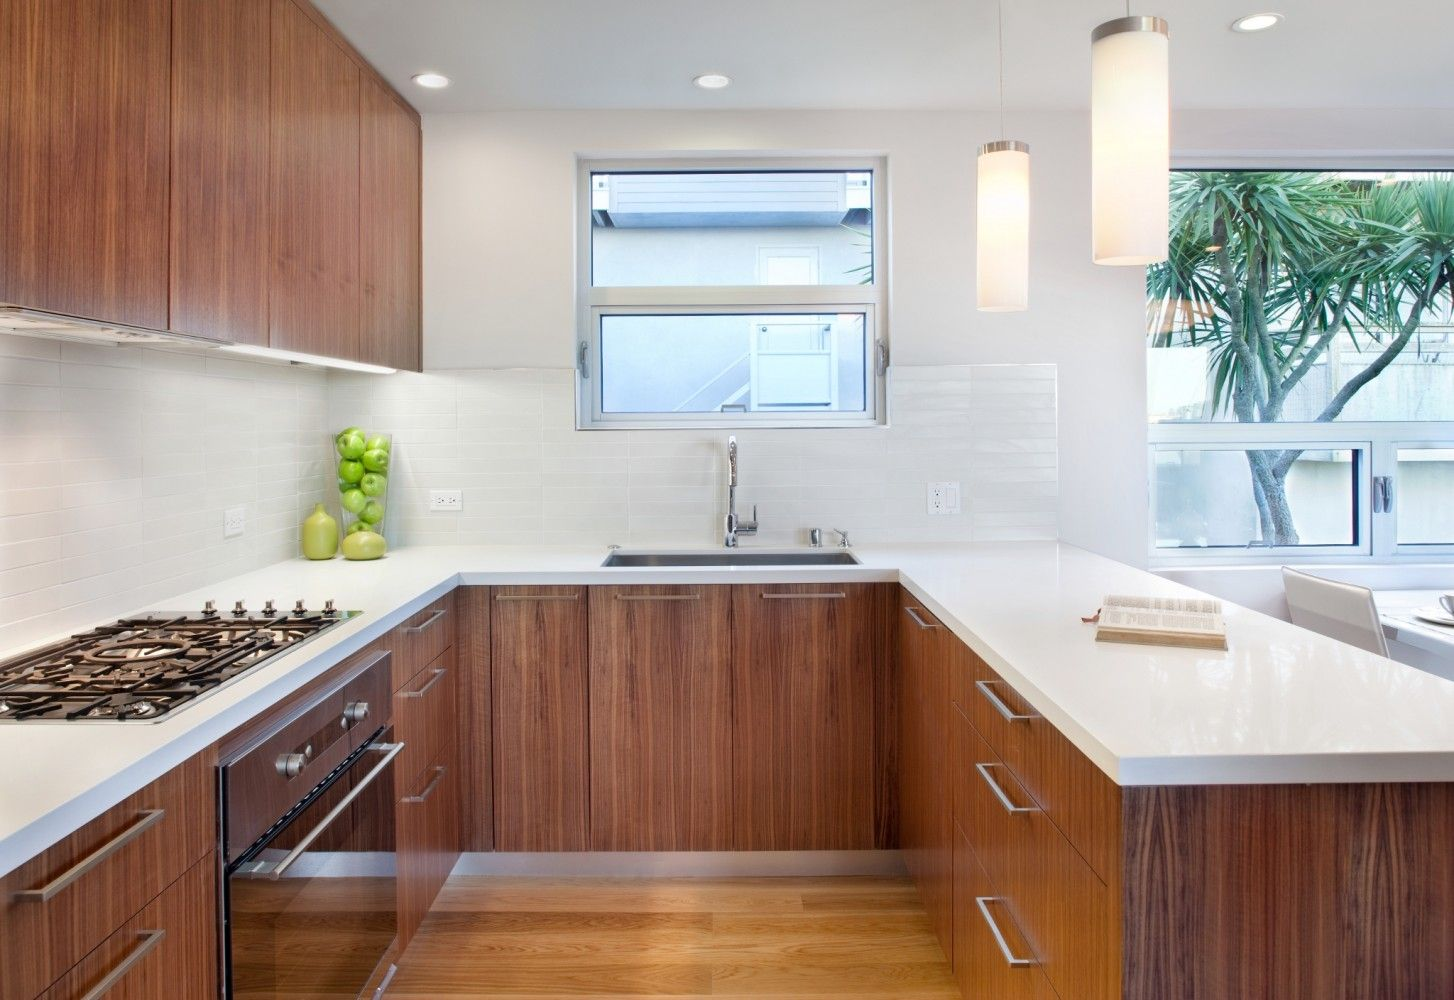 Mid Century Remodel Kitchen Design Modern U Shaped Kitchens Kitchen